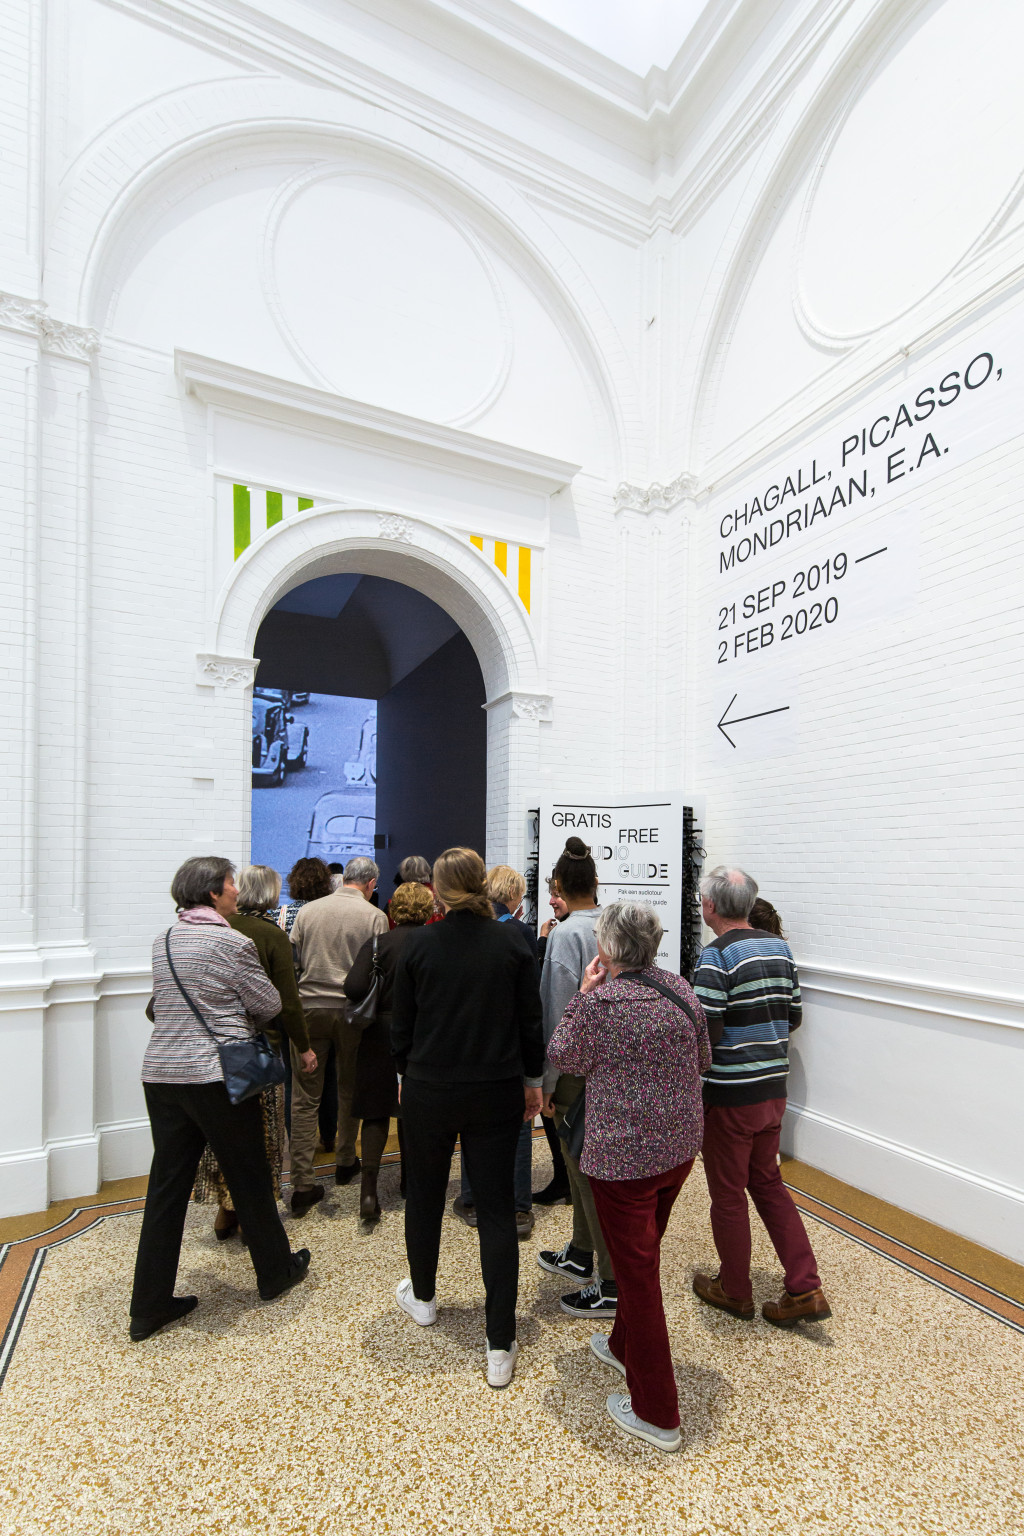 Visitors at the entrance to the exhibition. Photo: Maarten Nauw.